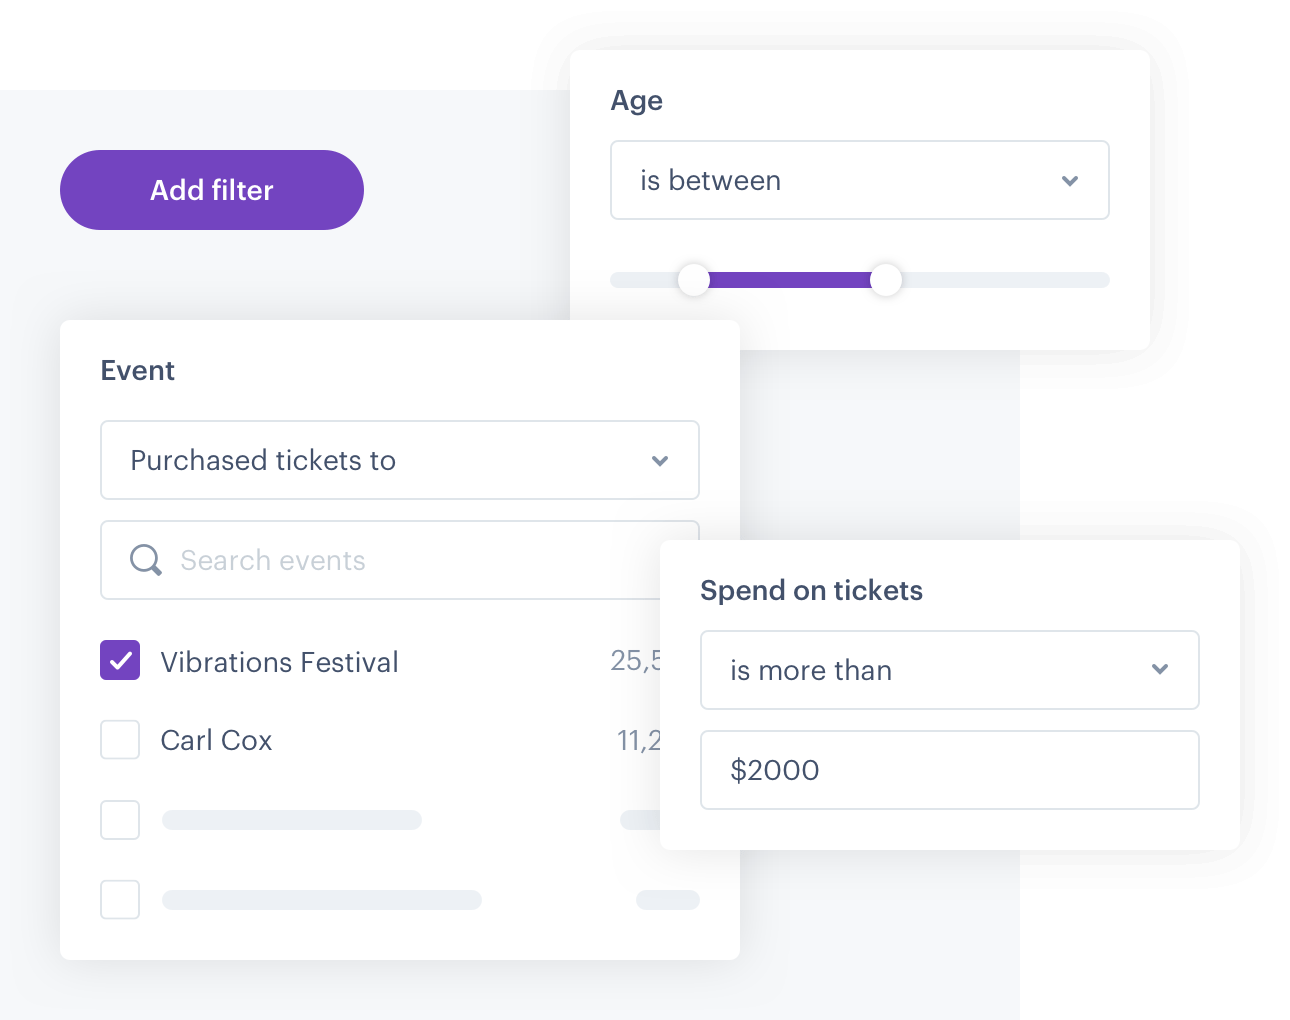 Screenshots of the filtering capabilities on the Audience Republic platform